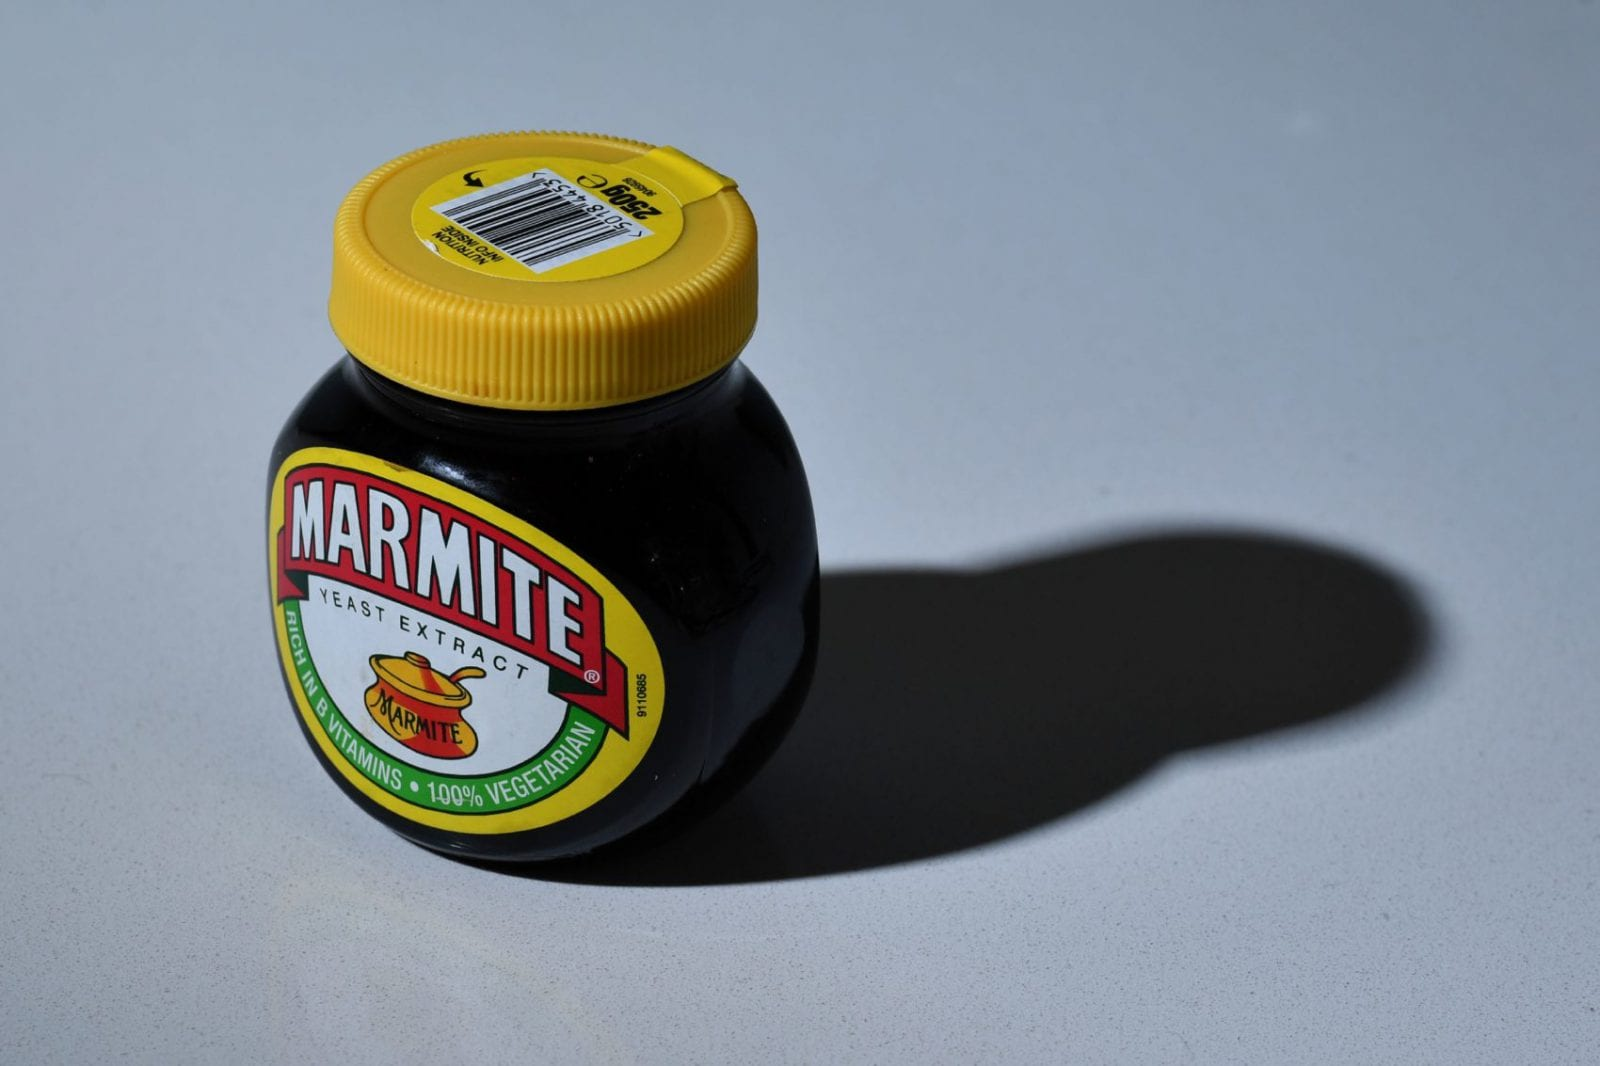 Carlsberg Steps In To Combat Lack Of Marmite Stocks By Sending More Brewer's Yeast To Unilever photo